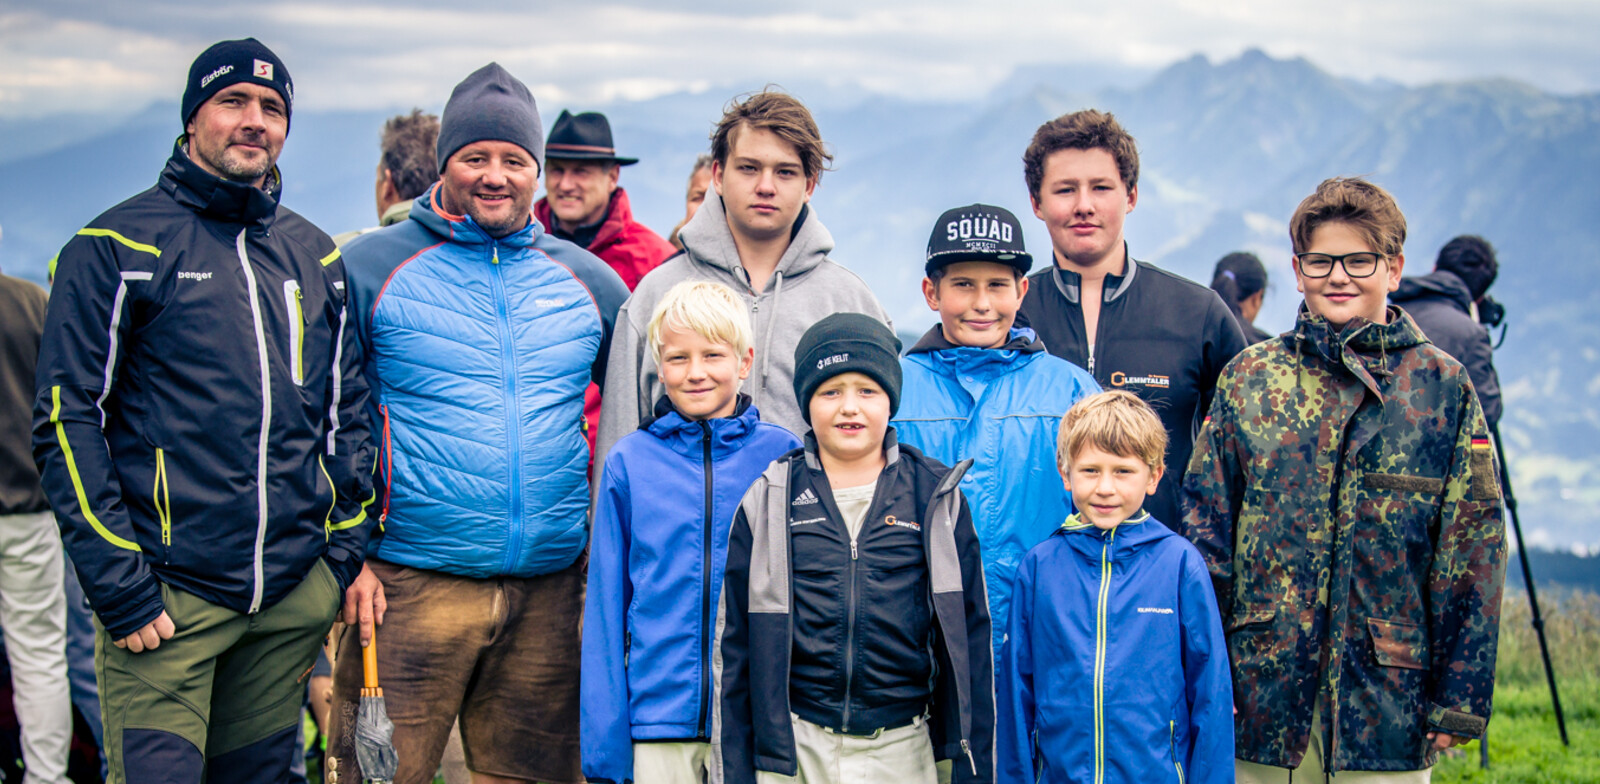 Ranggel-youngsters from Saalbach Hinterglemm with trainer Heli Kendler. | © Edith Danzer